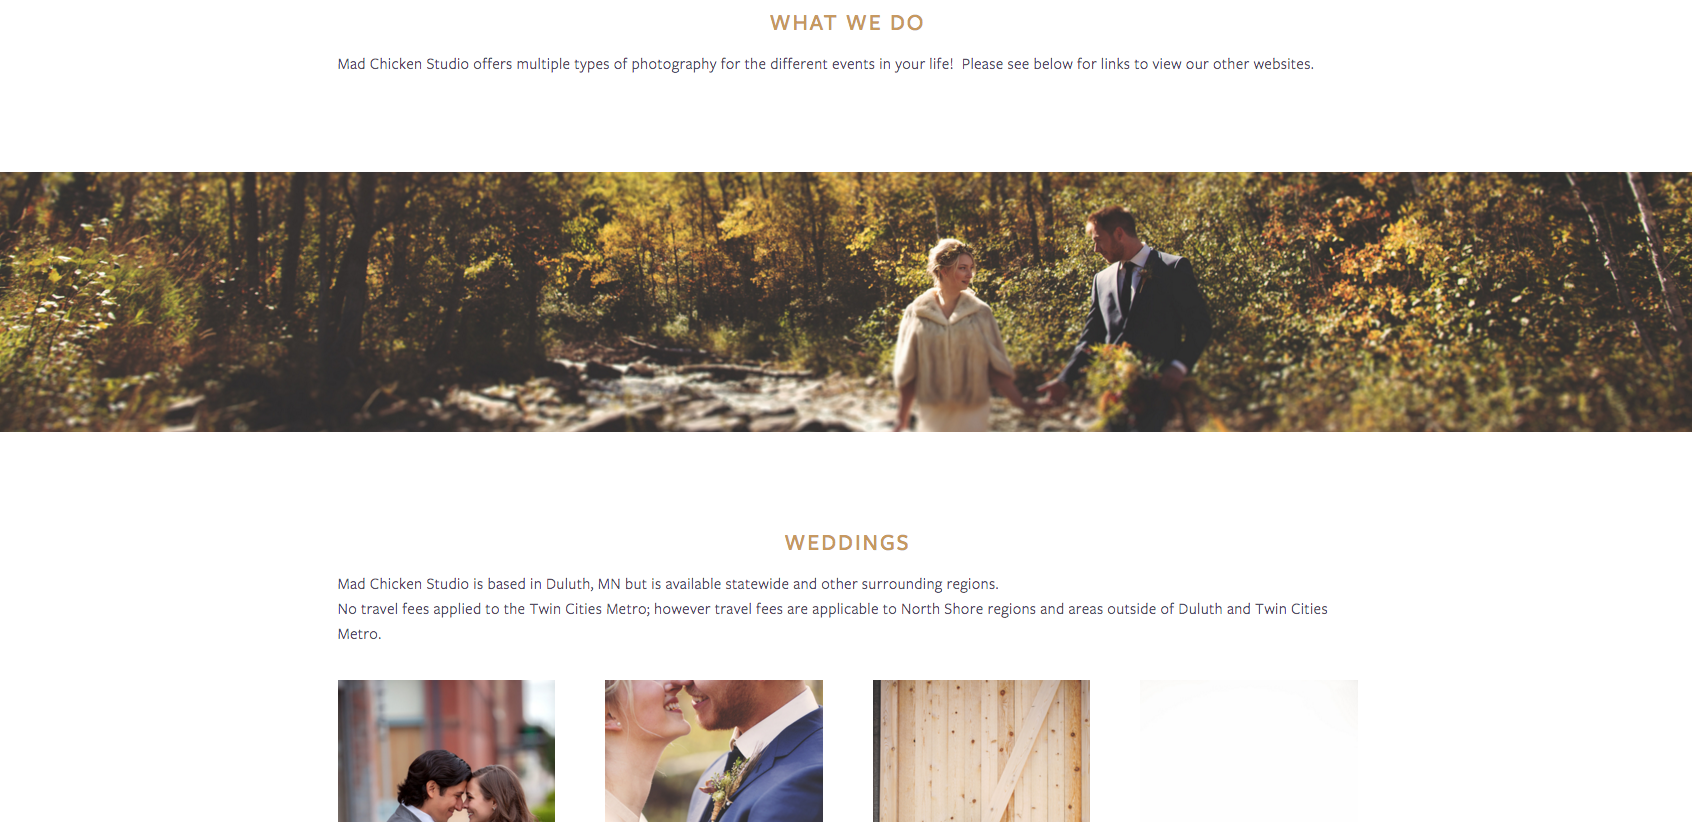 Website Design for Mad Chicken Studio a Duluth Photography Company | Heather Sharpe of The Editor's Touch